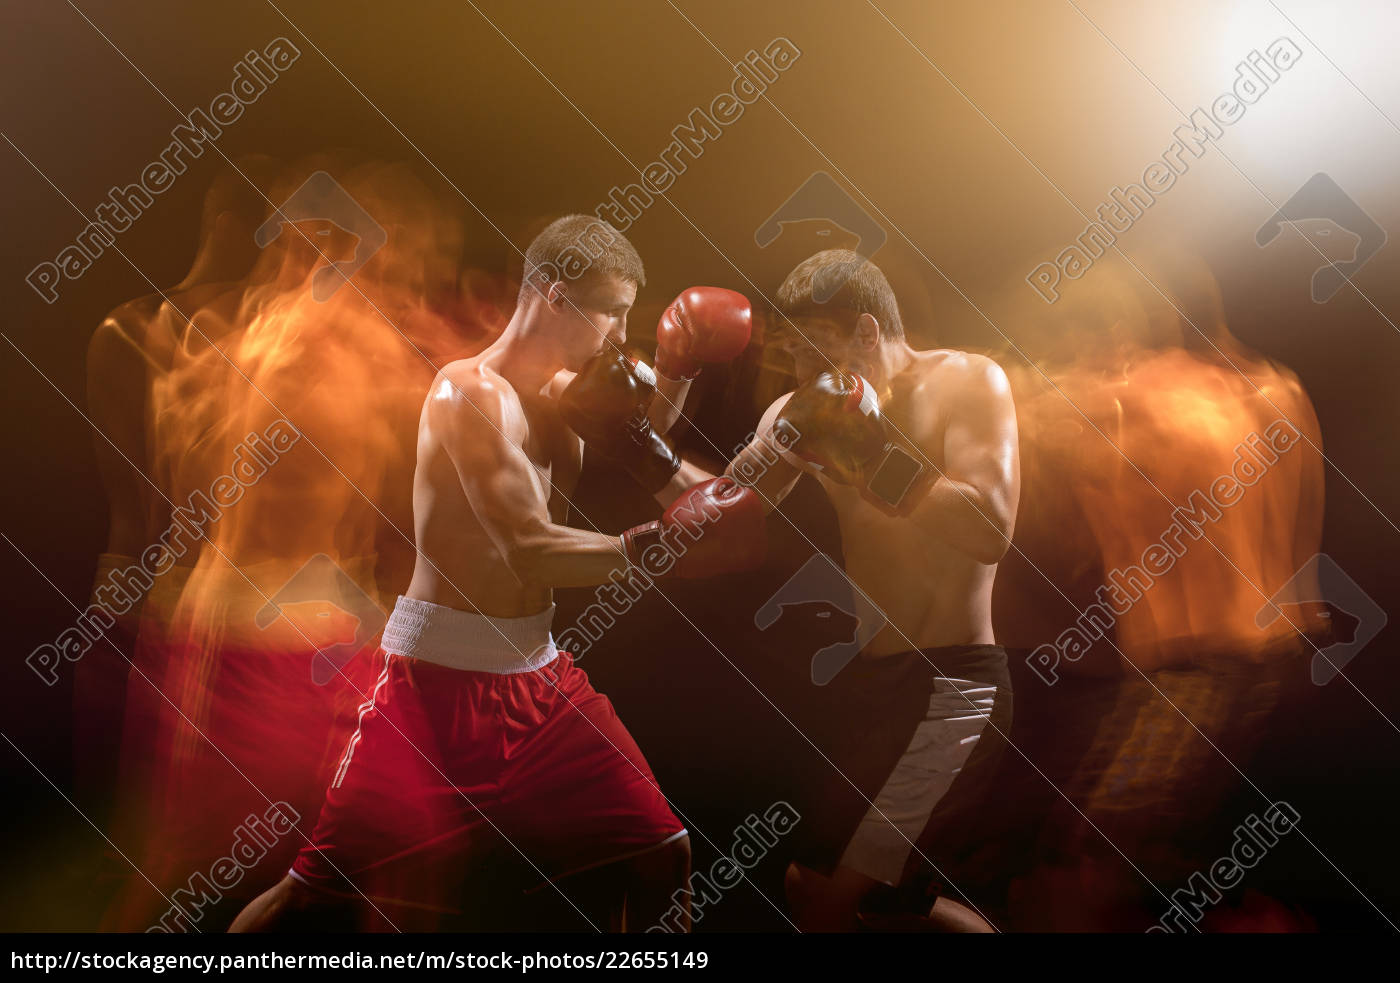 the, two, male, boxers, boxing, in - 22655149